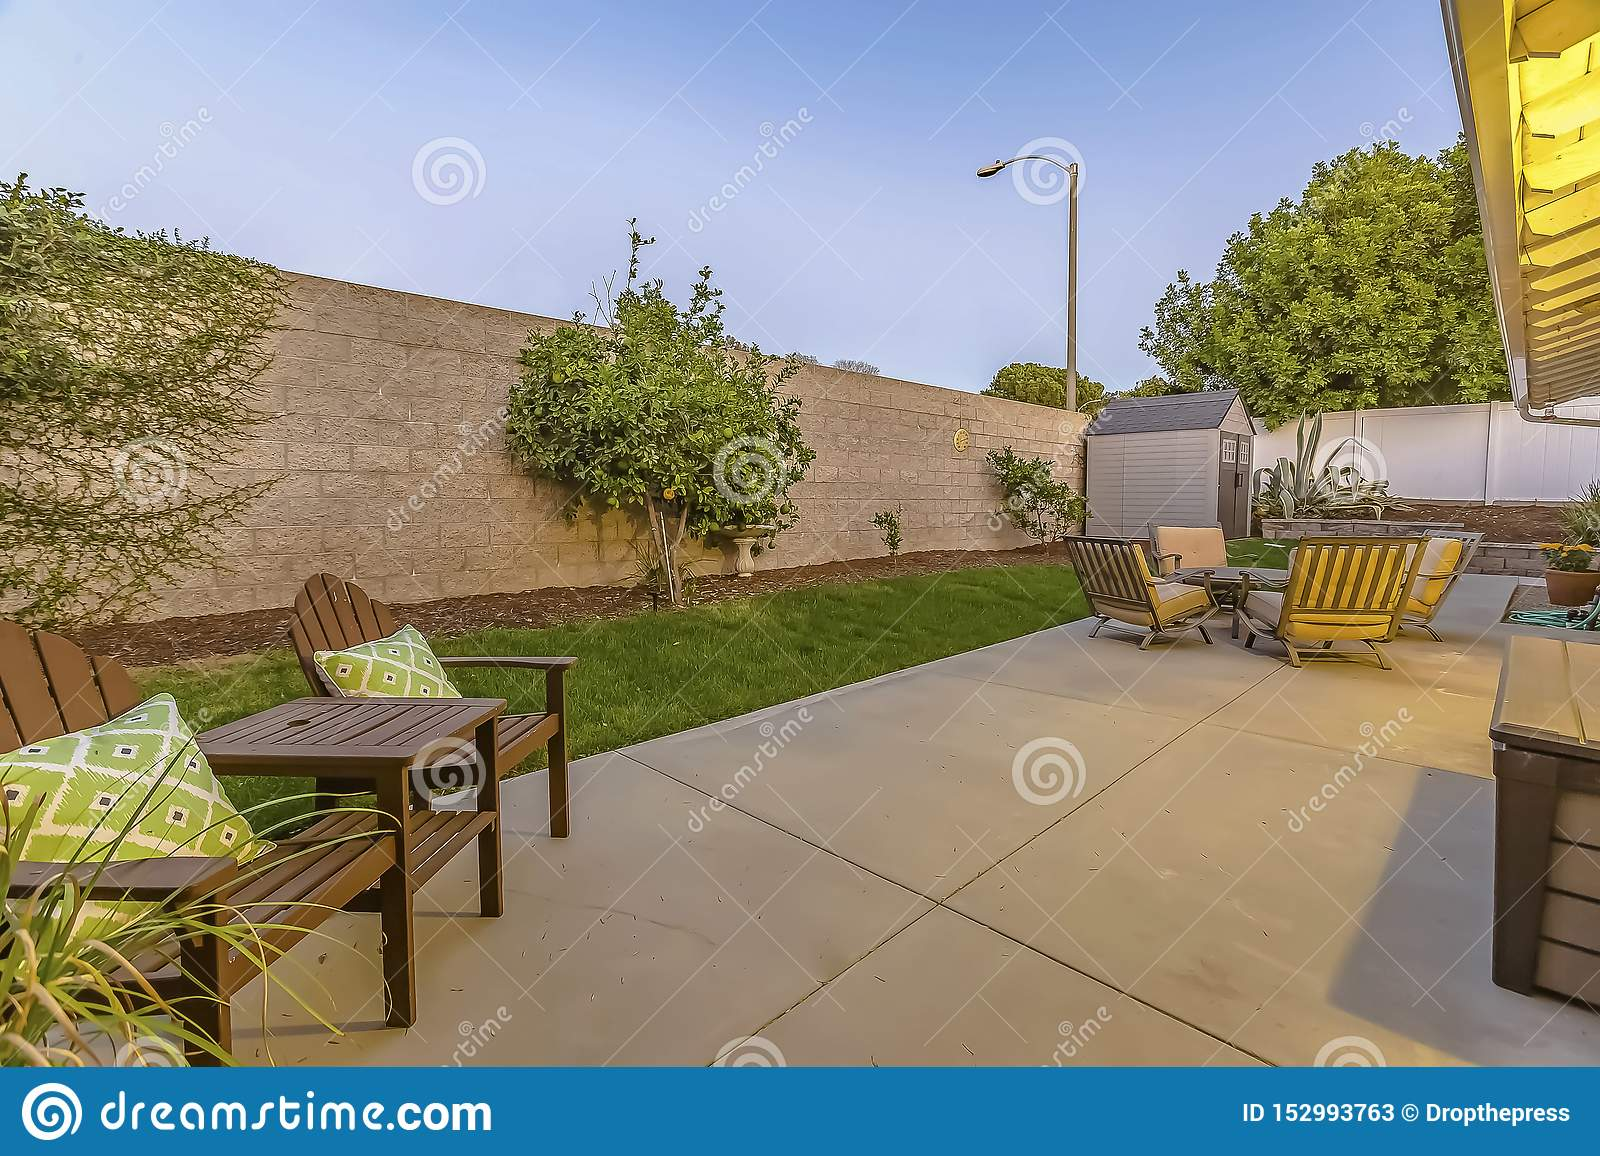 https www dreamstime com spacious patio backyard home seating dining area small shed corner yard enclosed inside concrete wooden image152993763